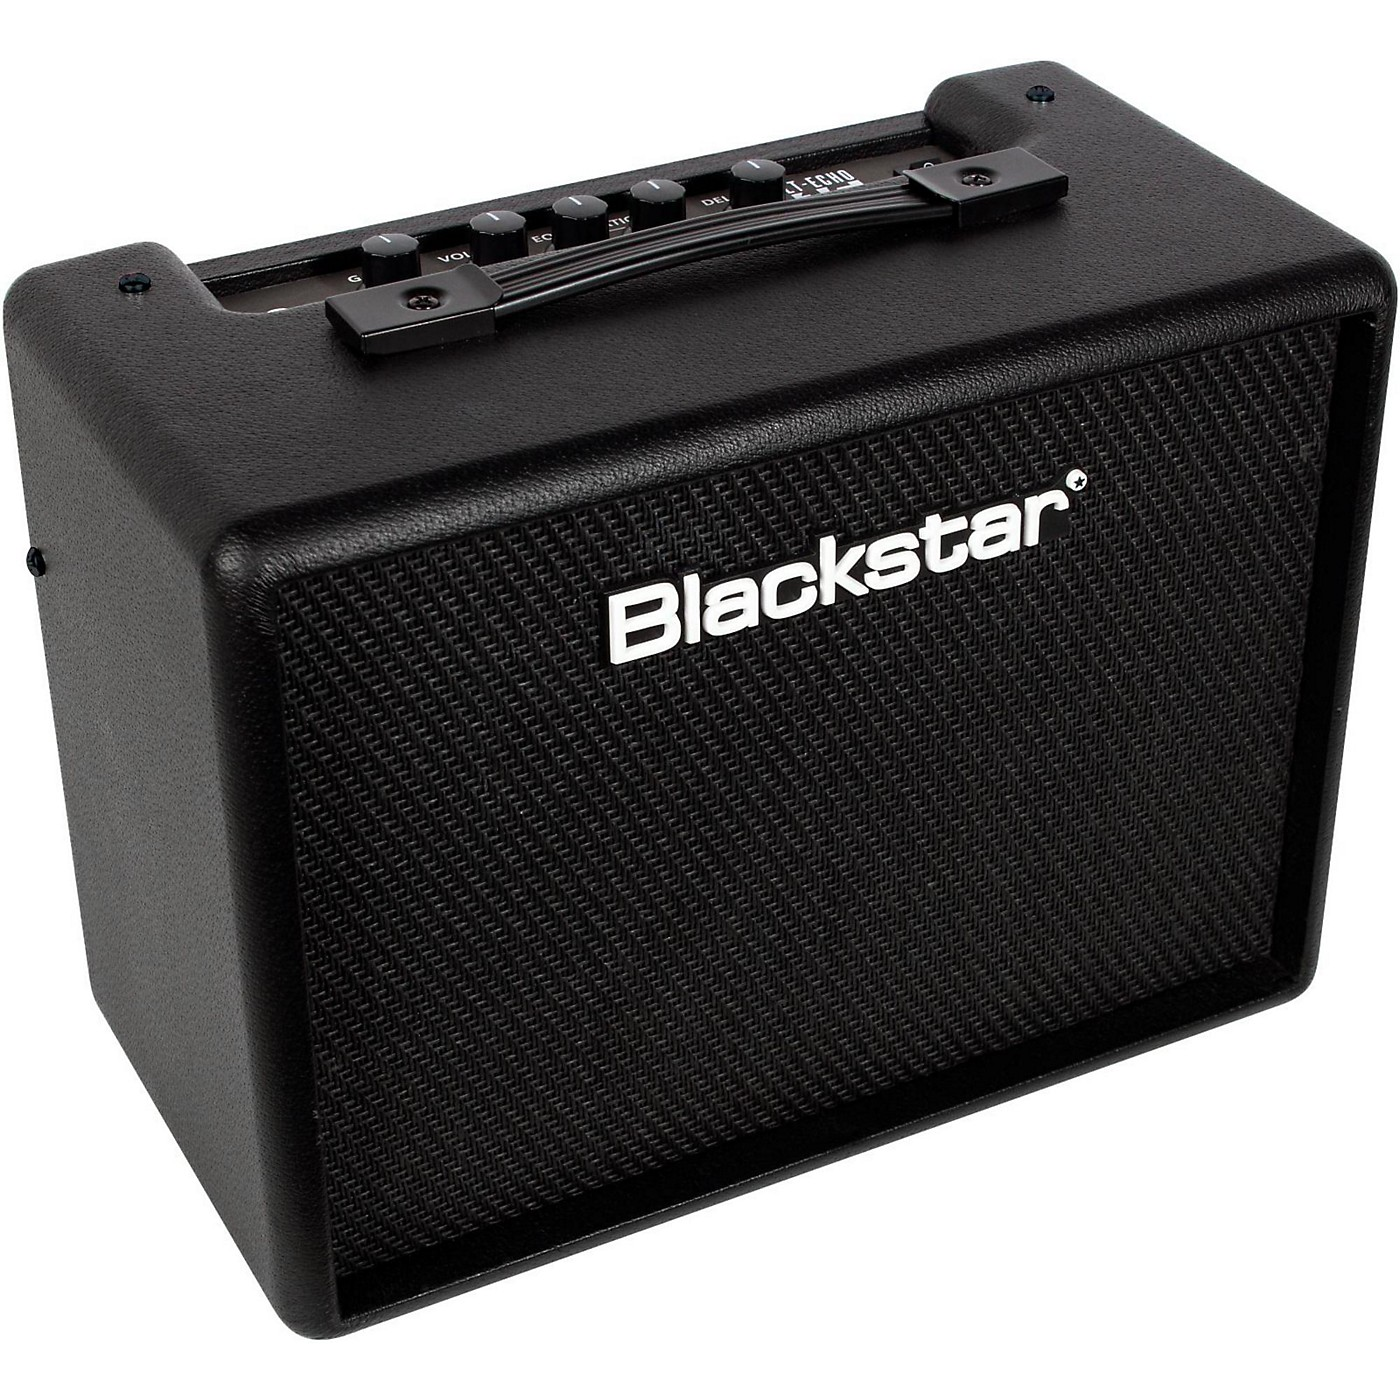 Blackstar LT-ECHO 15 15W 2x3 Guitar Combo Amplifier thumbnail